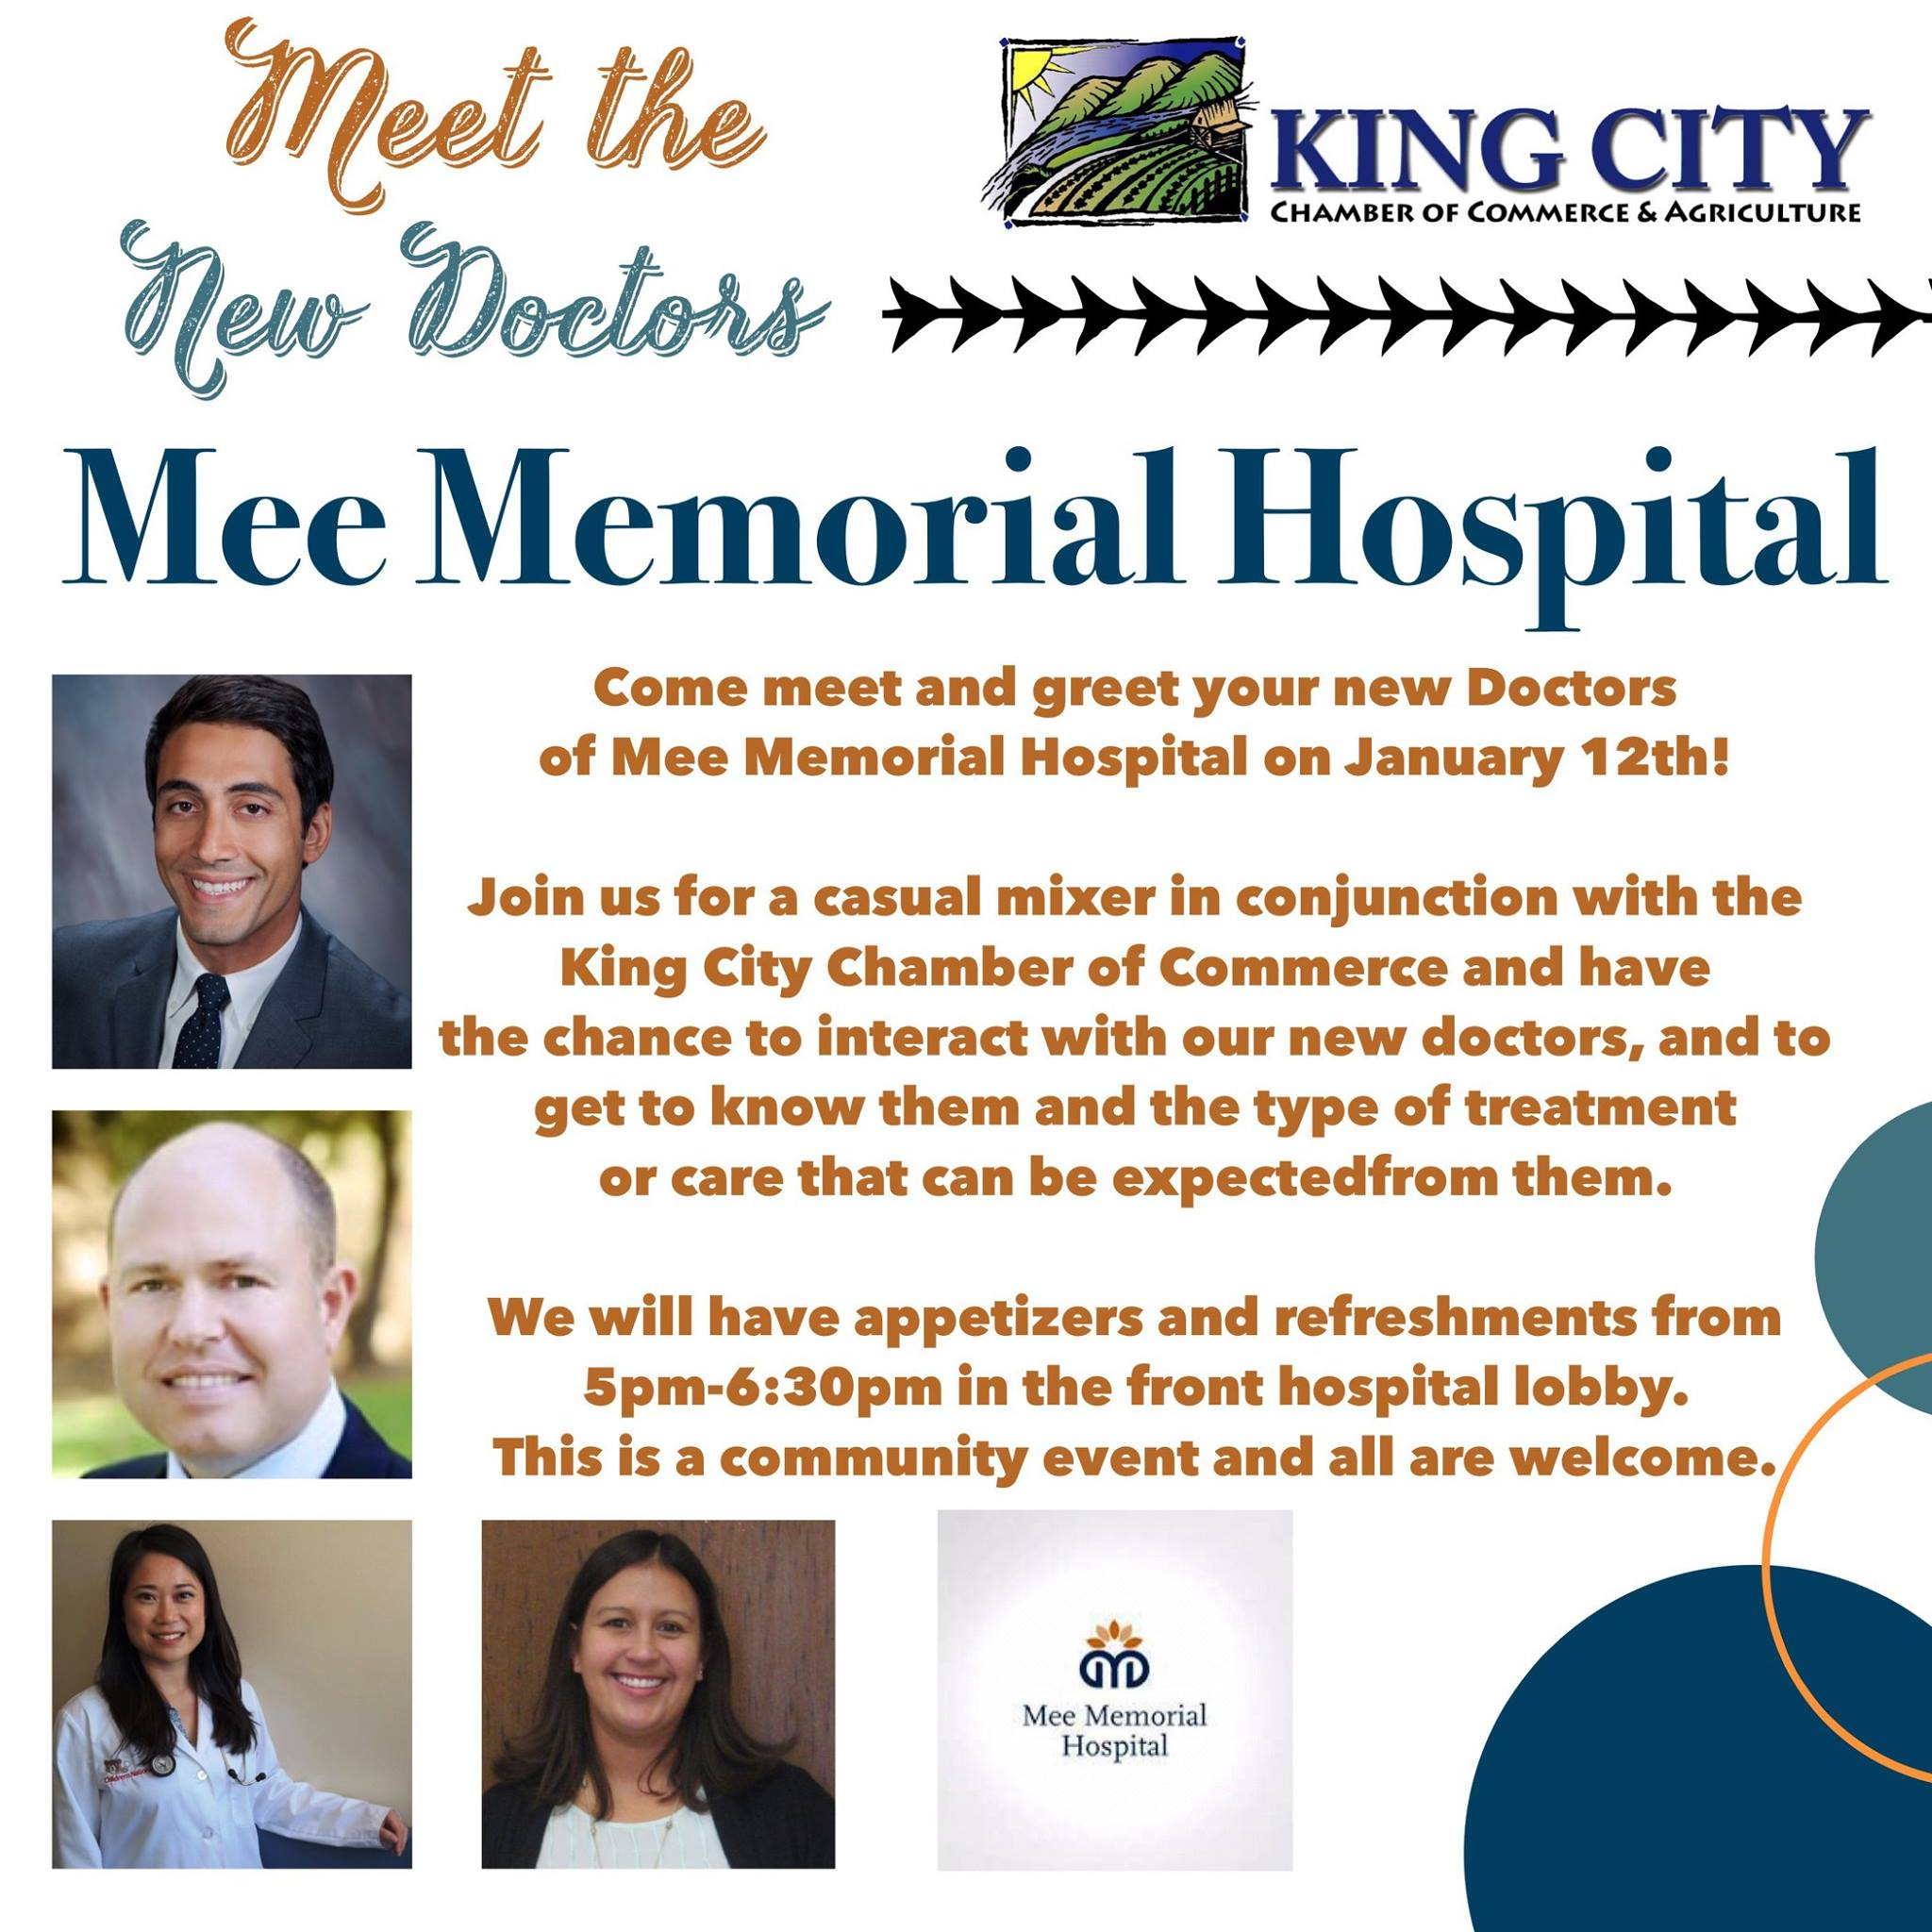 Mee Memorial Hospital would like to welcome new doctors to